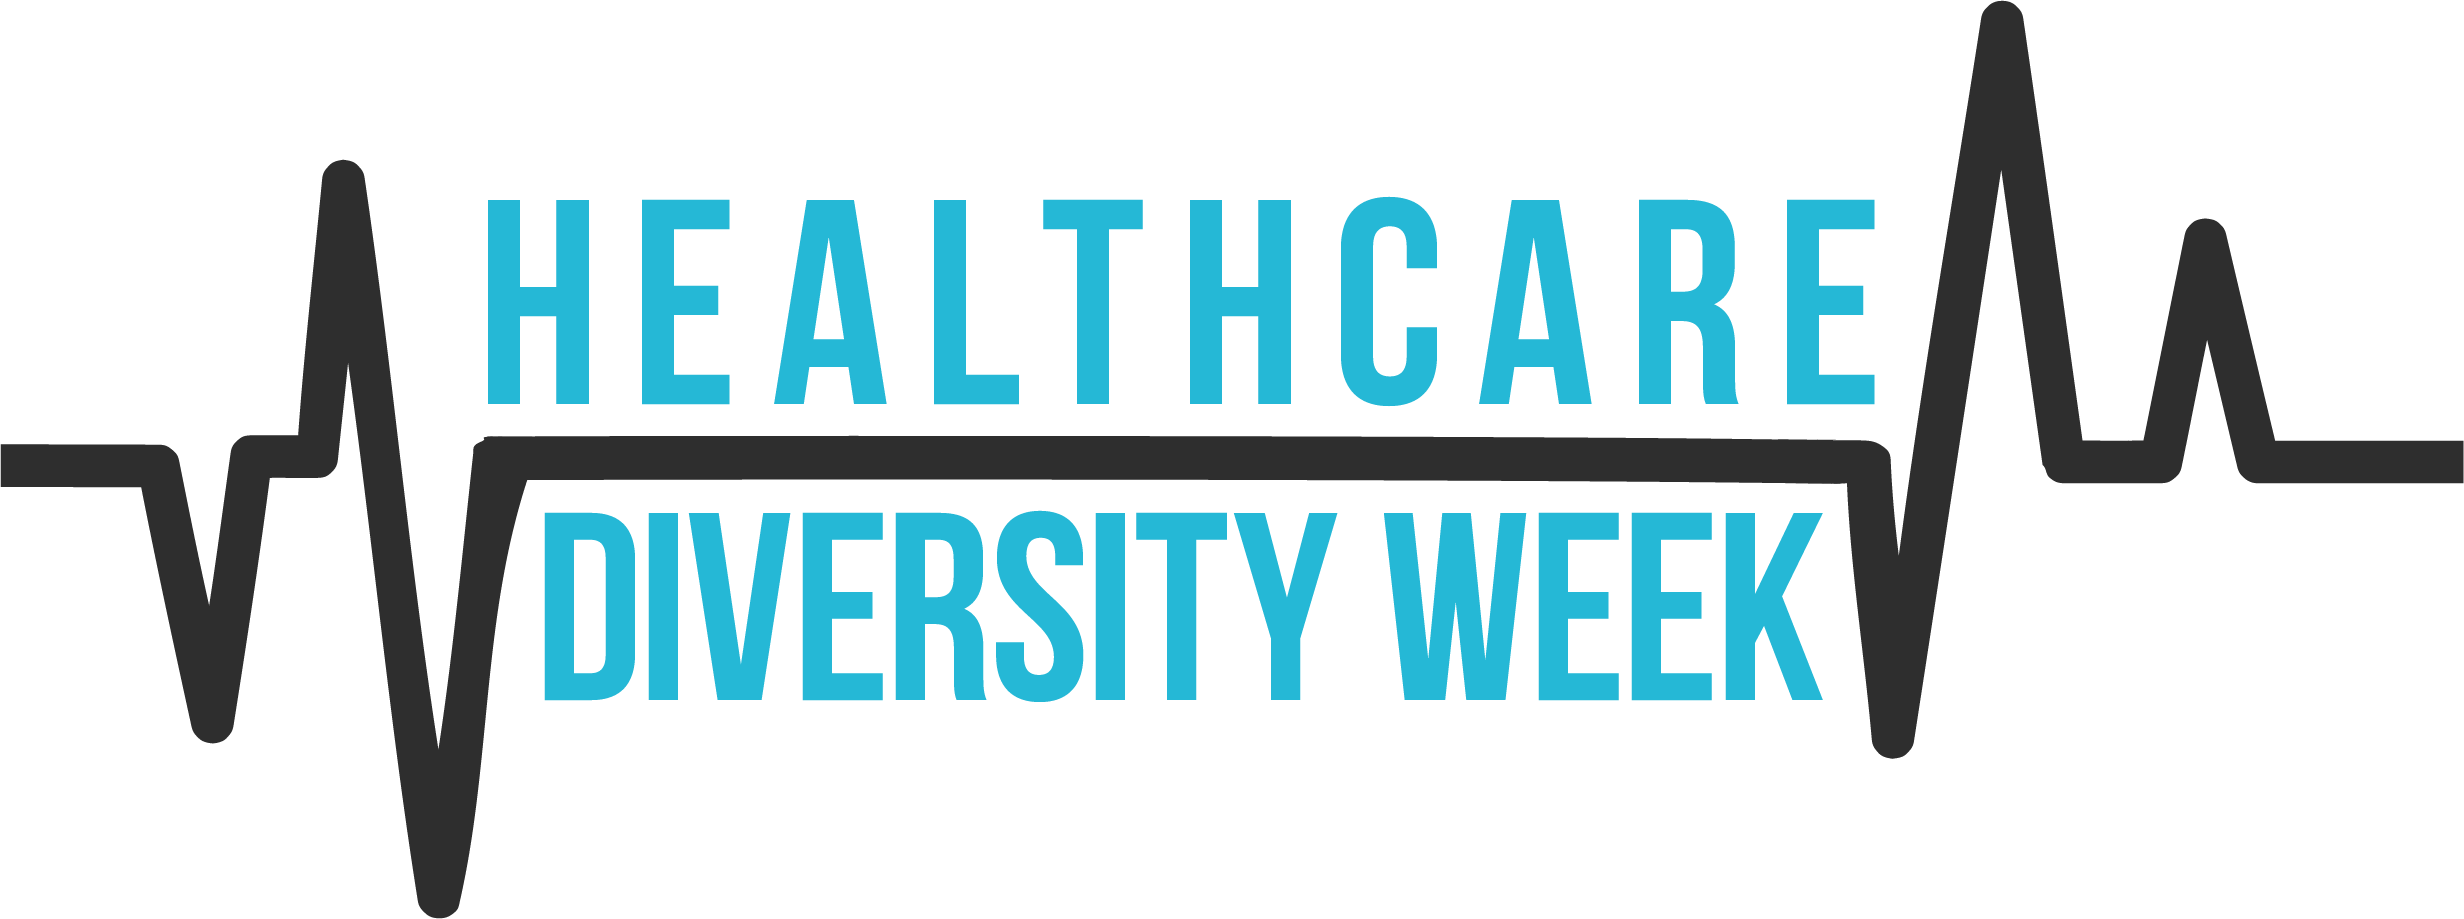 Healthcare Diversity Week